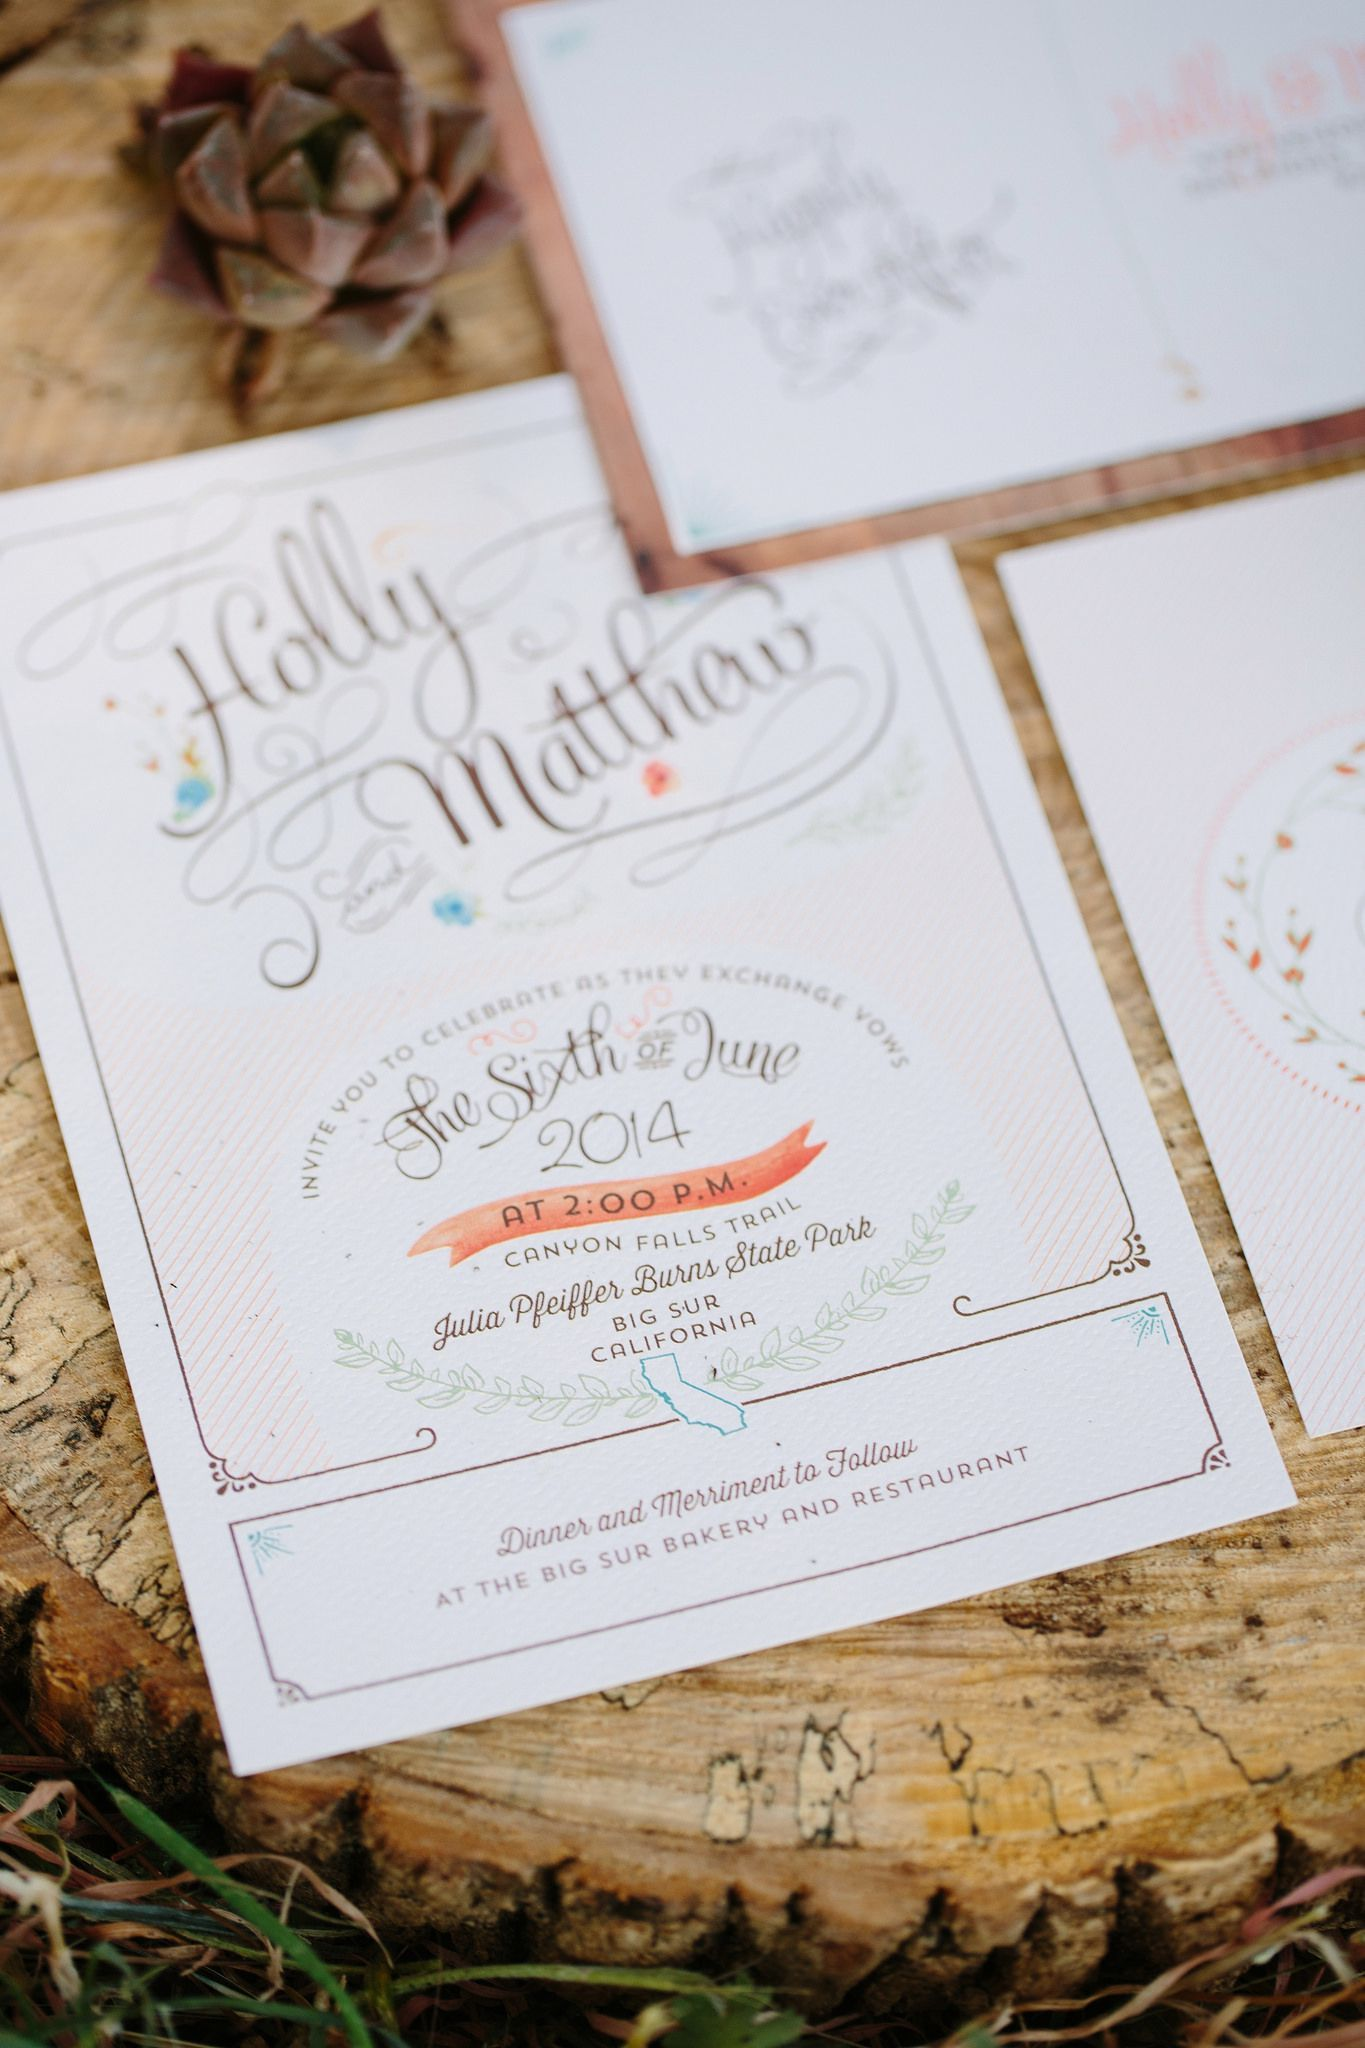 How To Select The Early Send Out Wedding Invitations Free Templates